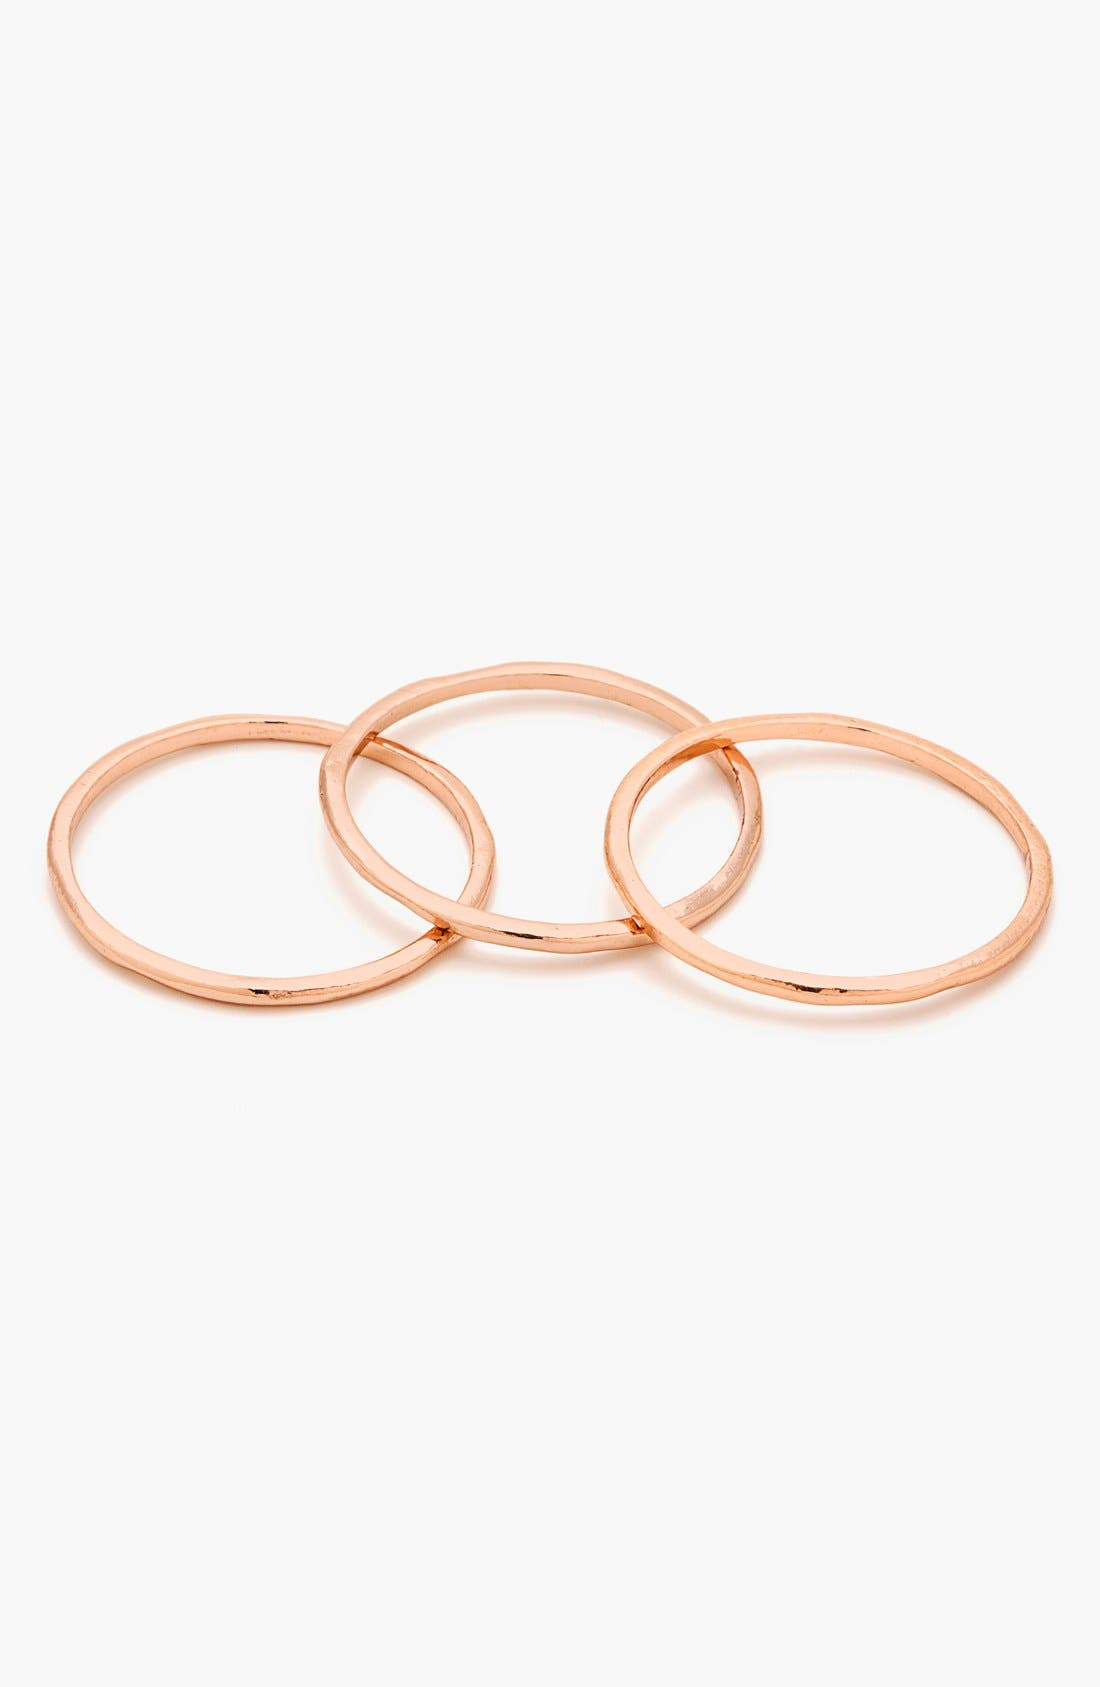 Alternate Image 2  - gorjana 'G Ring' Rings (Set of 3)